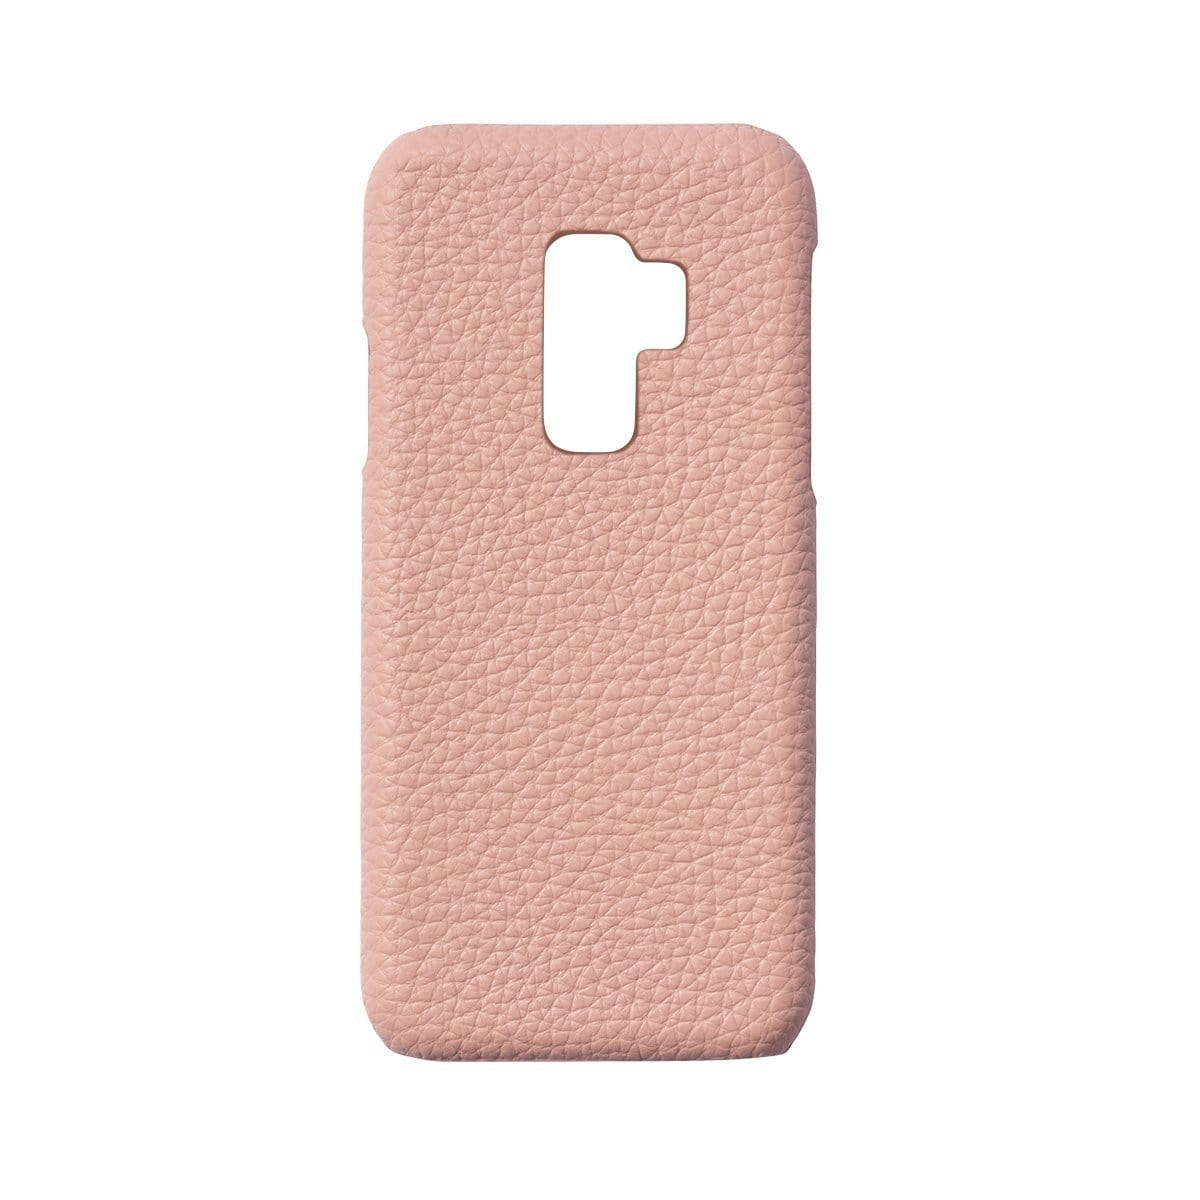 Blush Pink Phone Case (Samsung 9+)